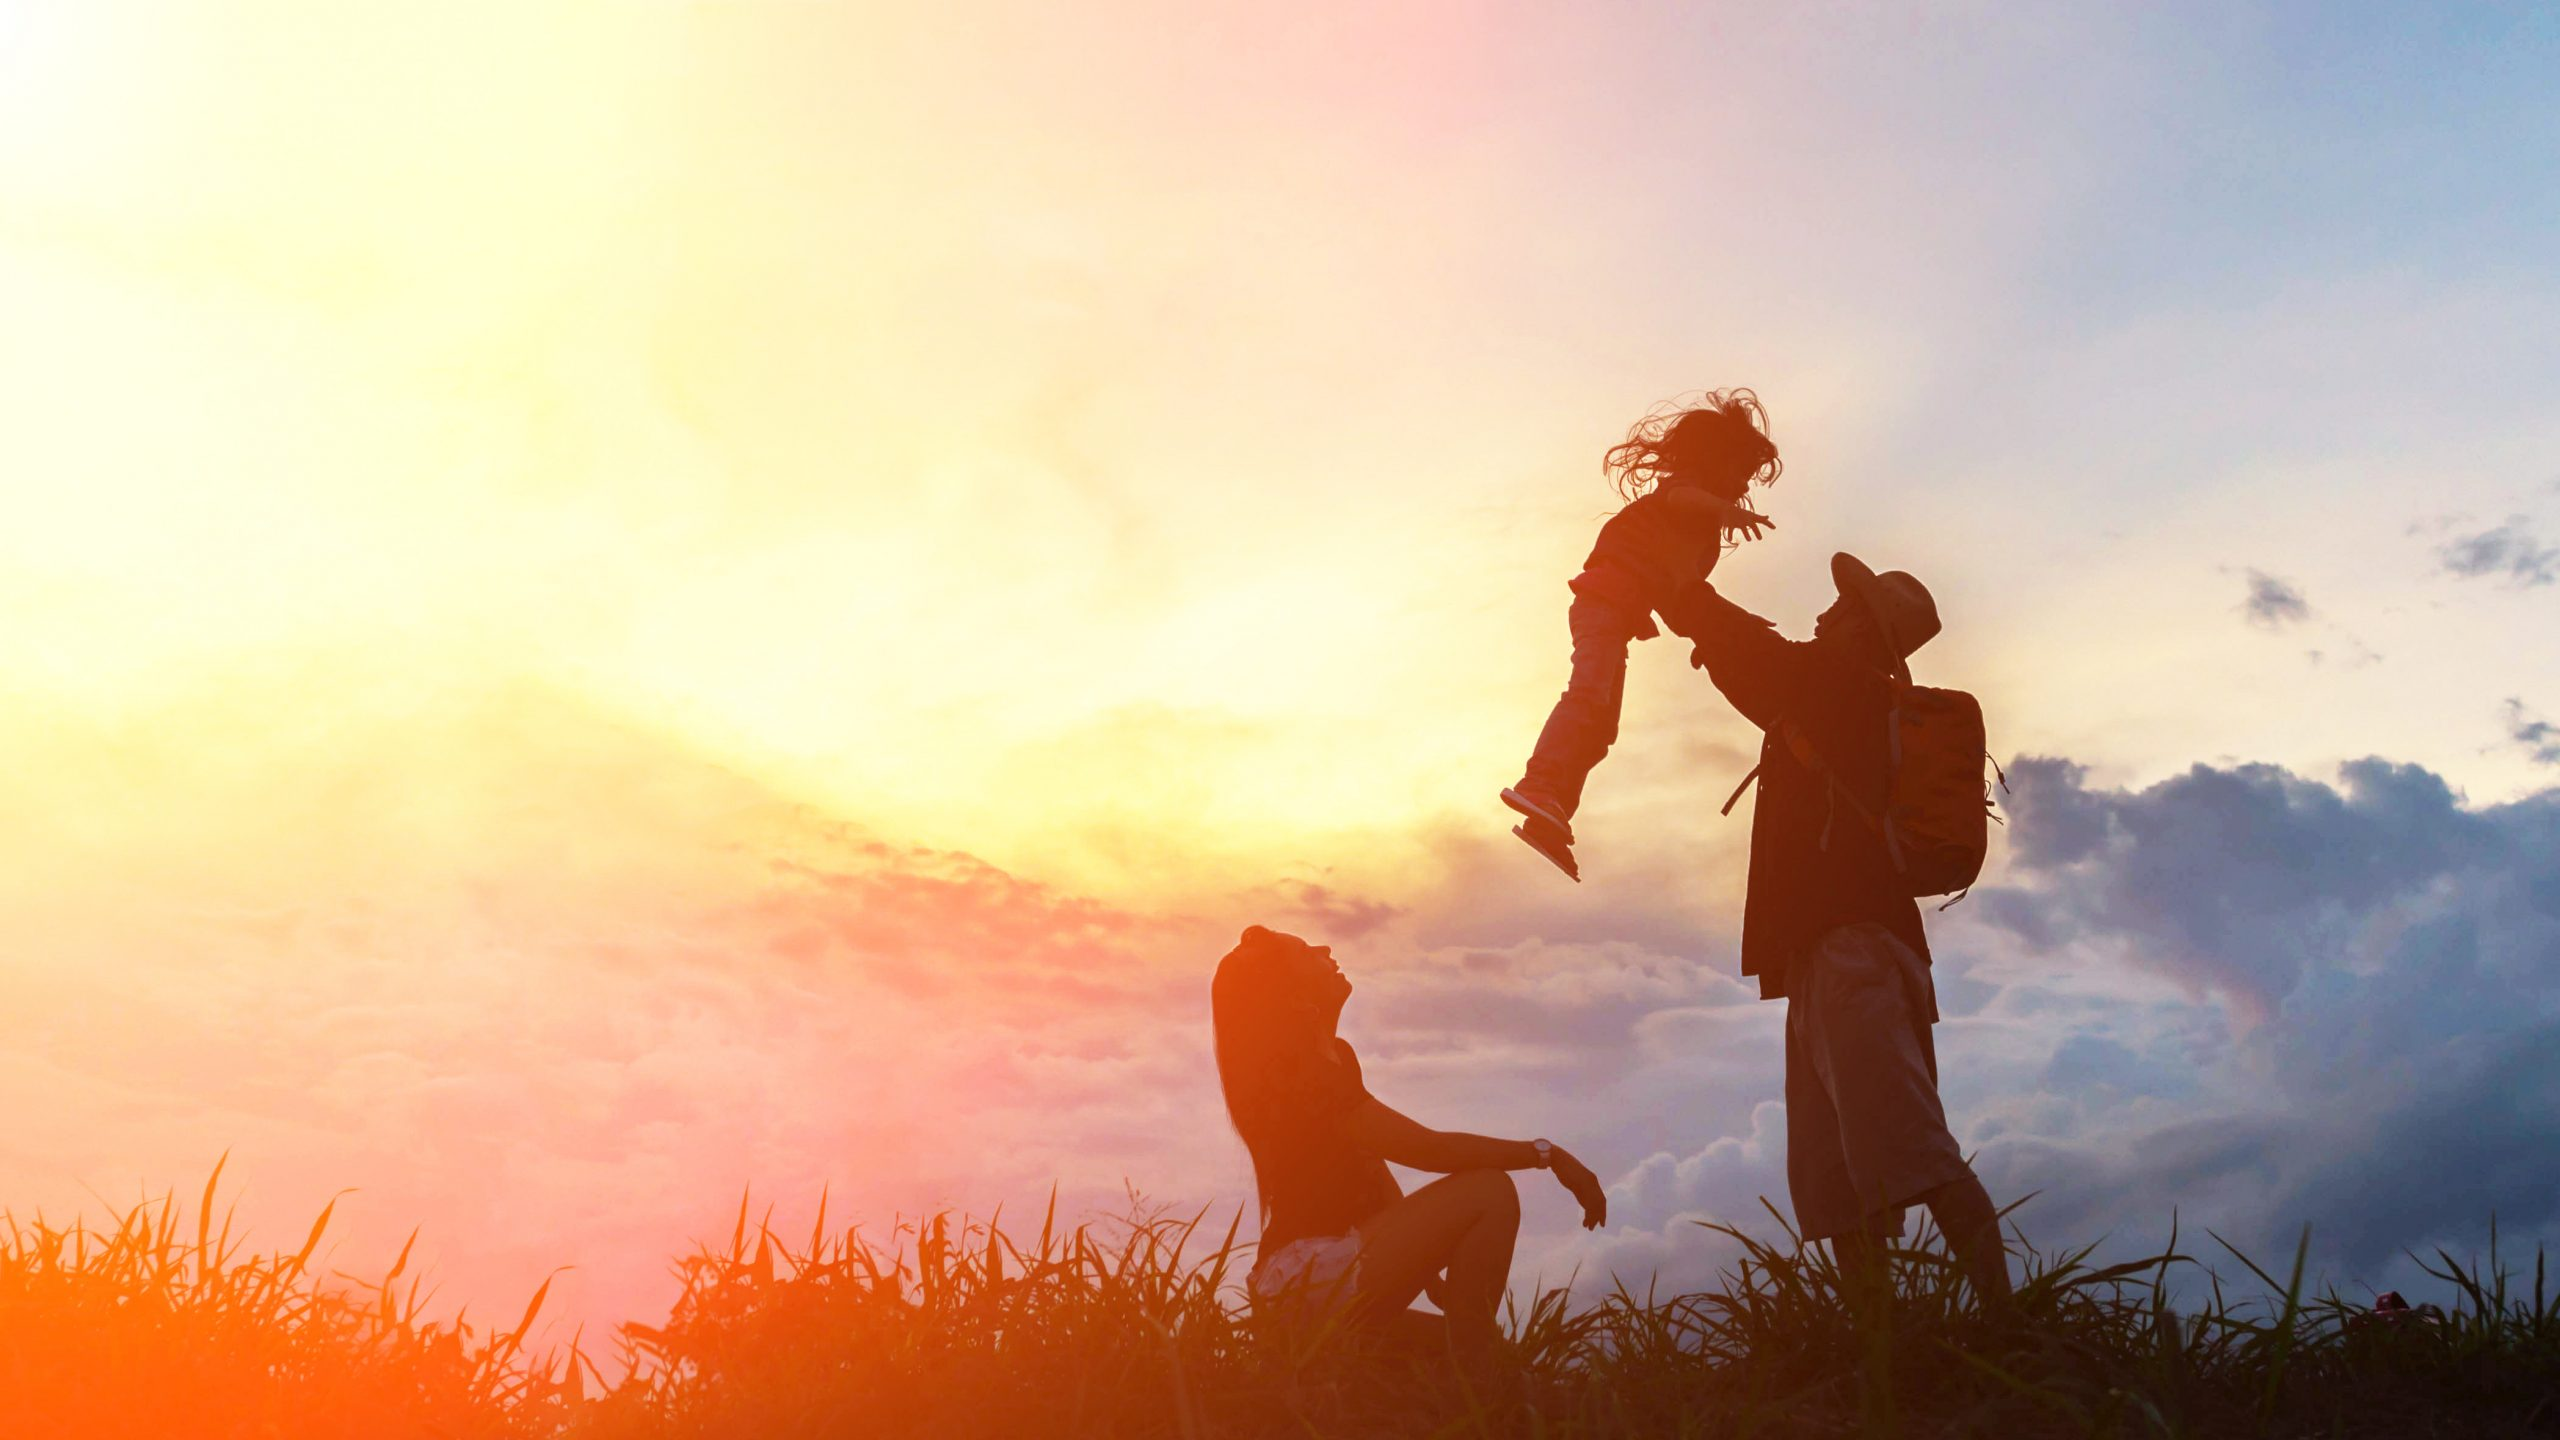 The happy family of three people, mother, father and child in front of a sunset sky.